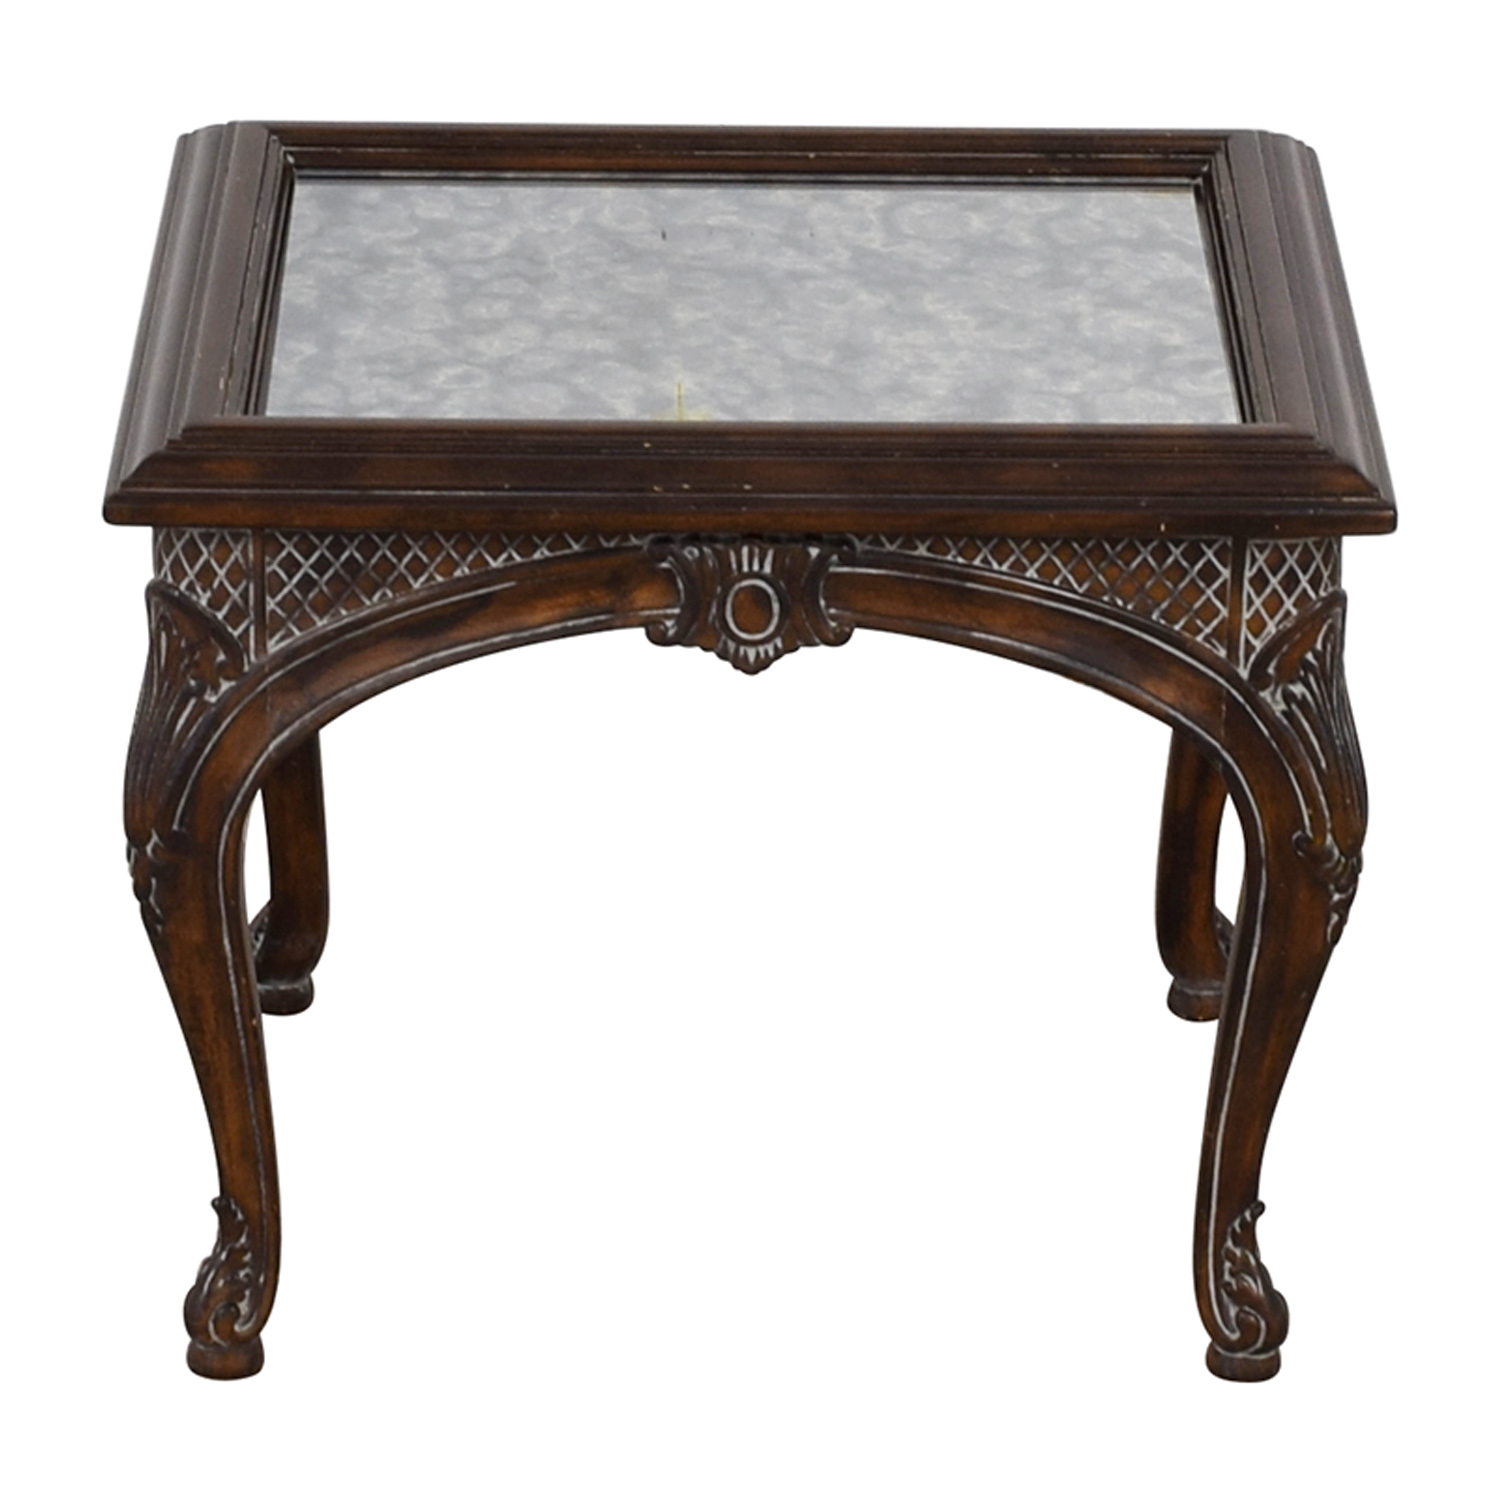 Antique Mirrored Ebony Wood Carved Side Table coupon